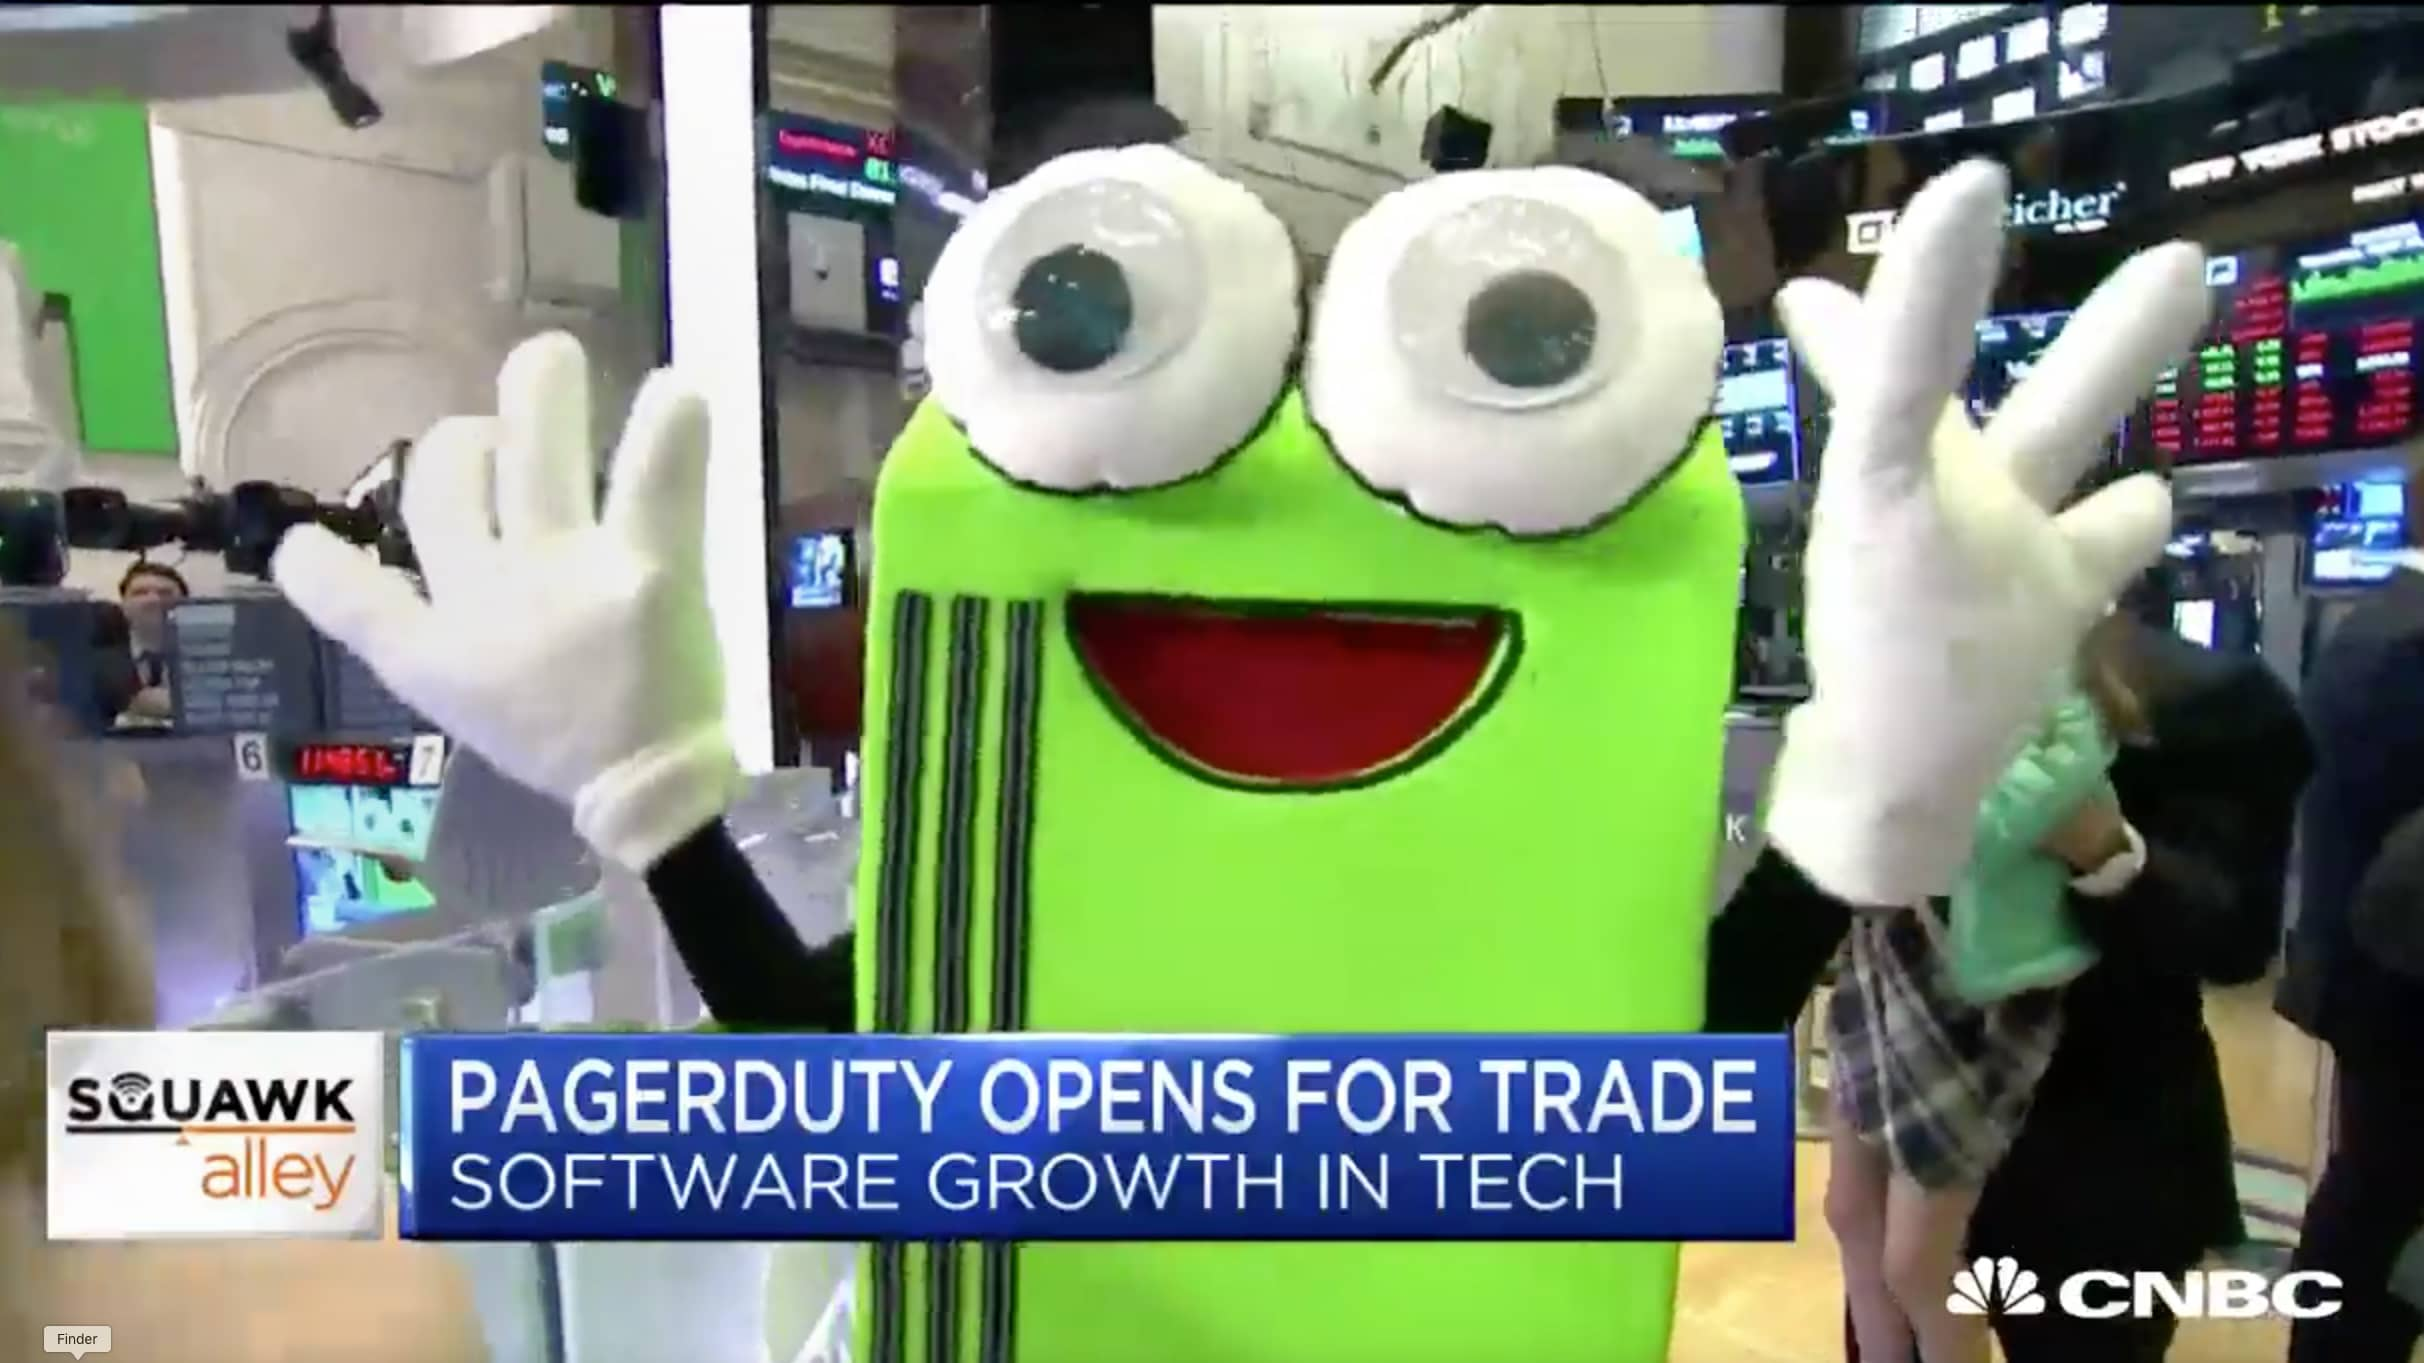 Pagey at NYSE